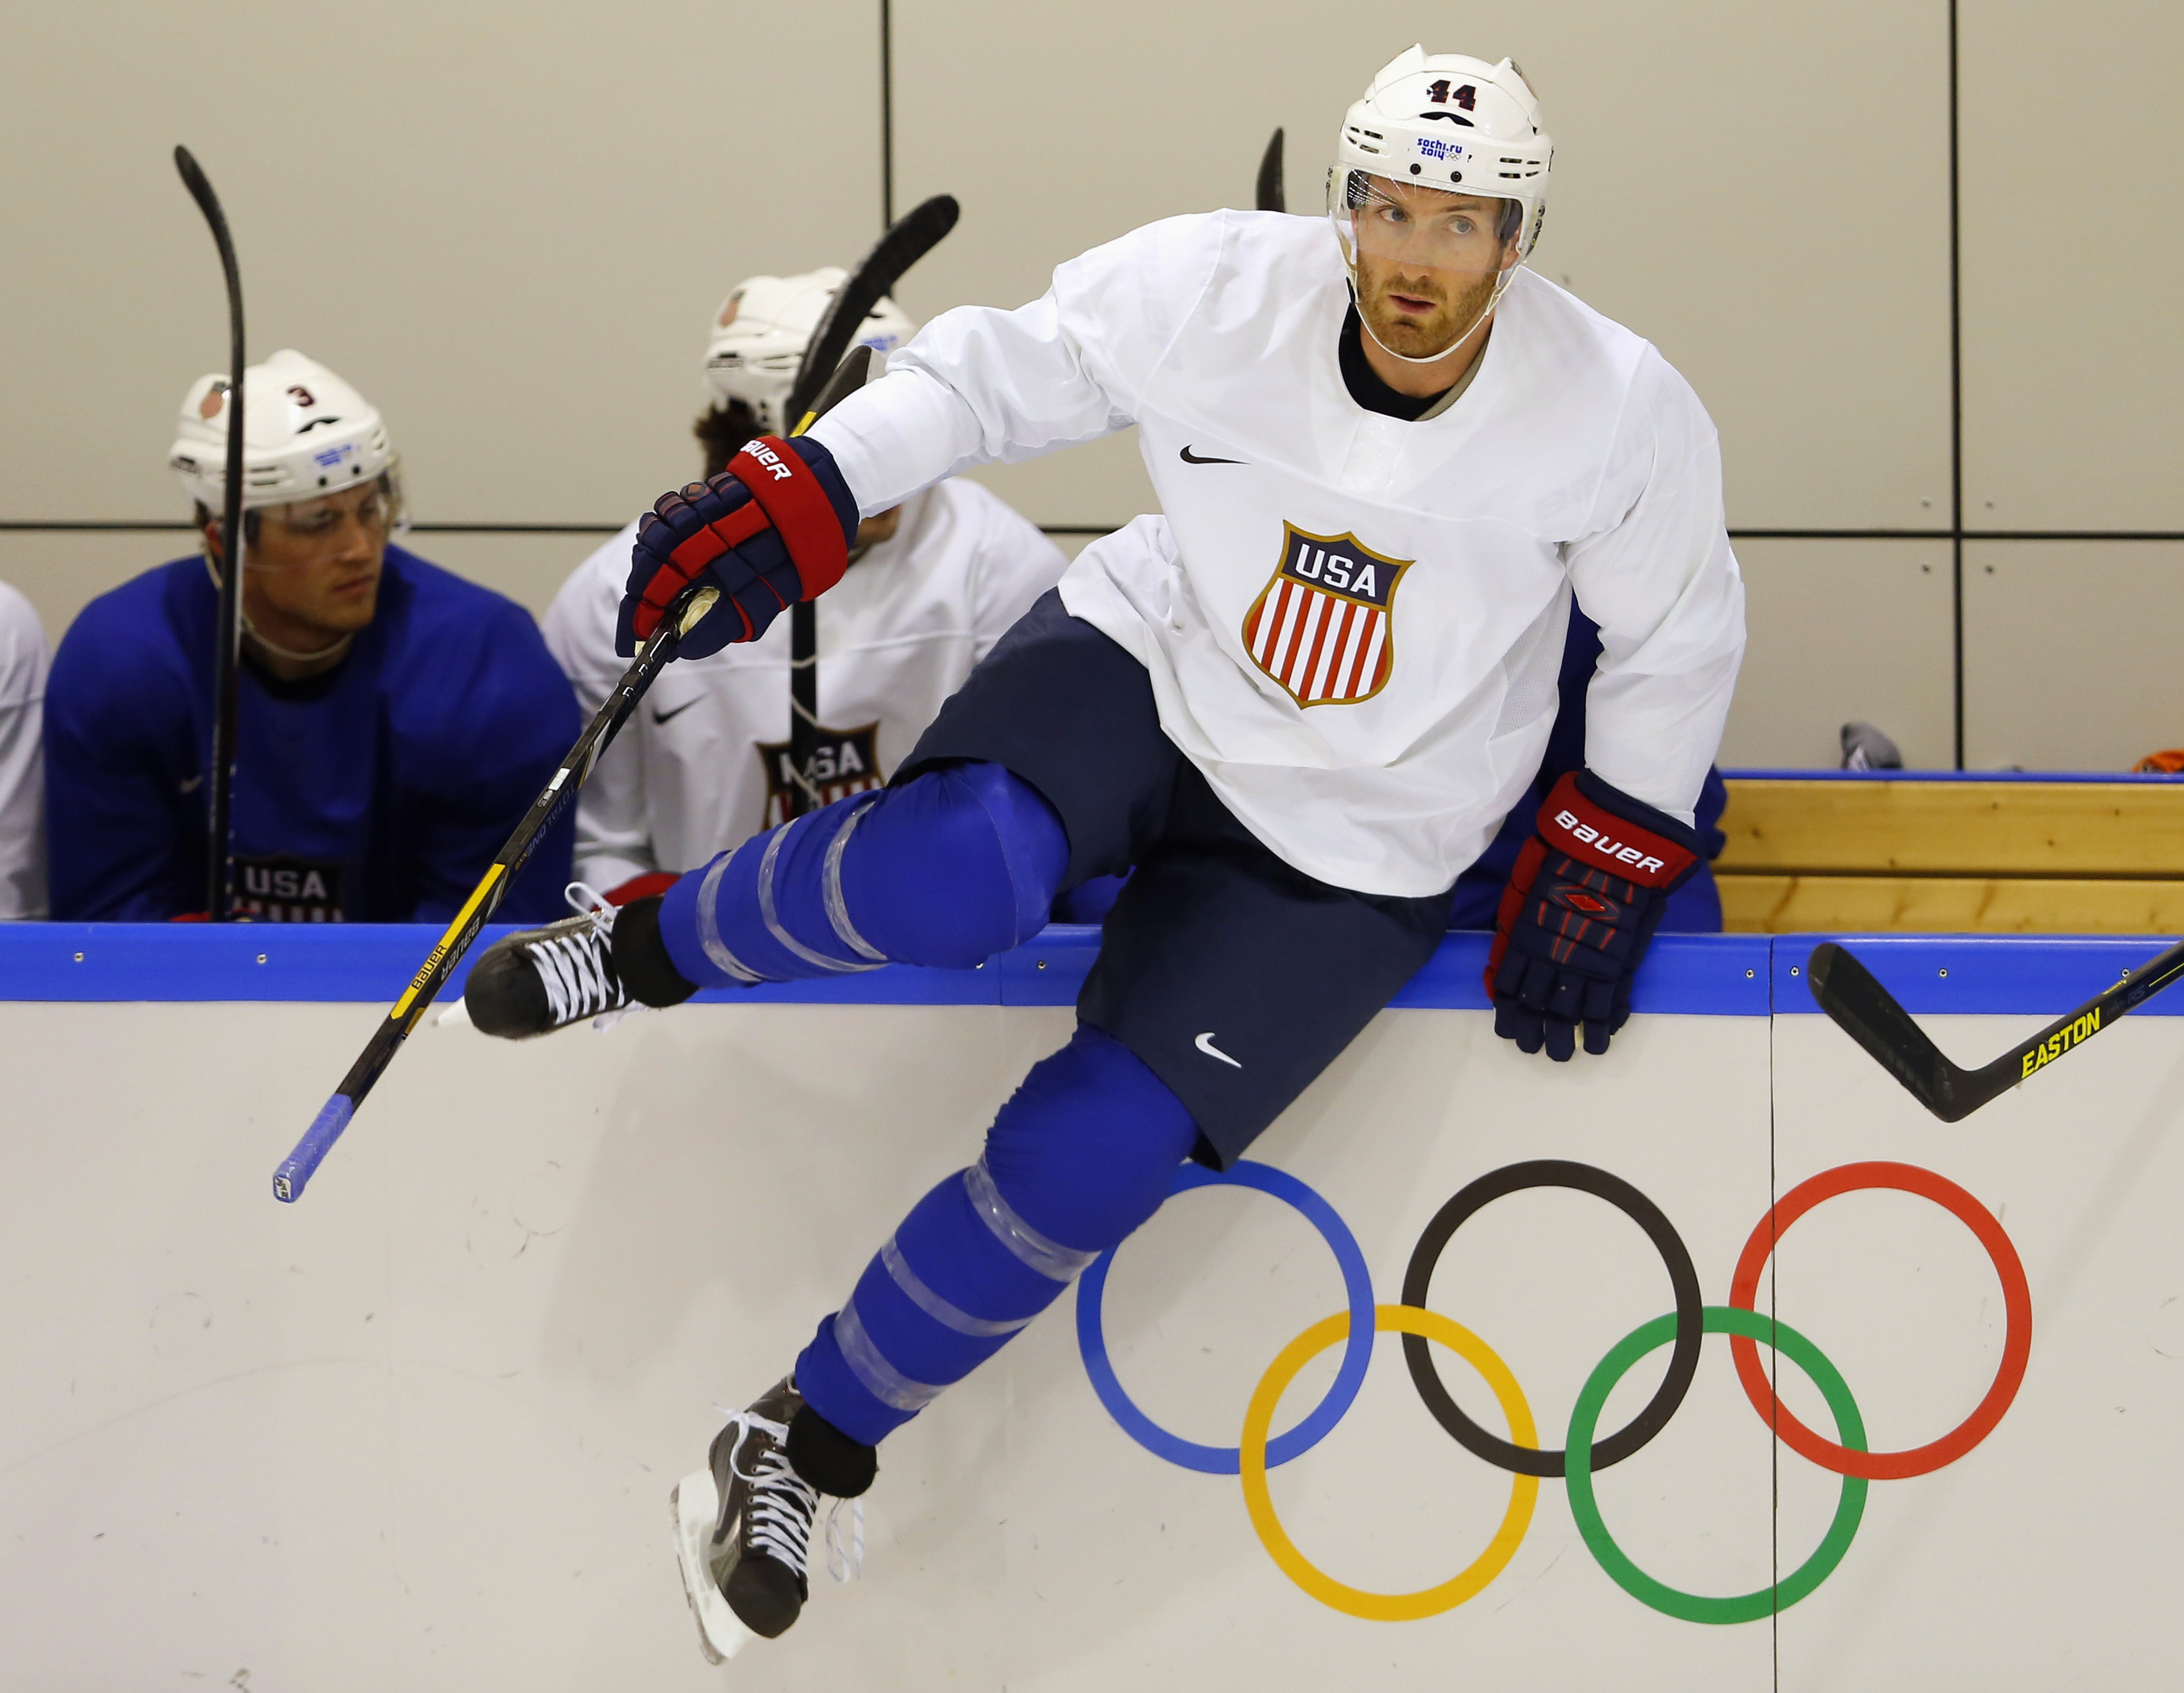 Men s hockey schedule 2014 olympics sochi ice matchups date amp times